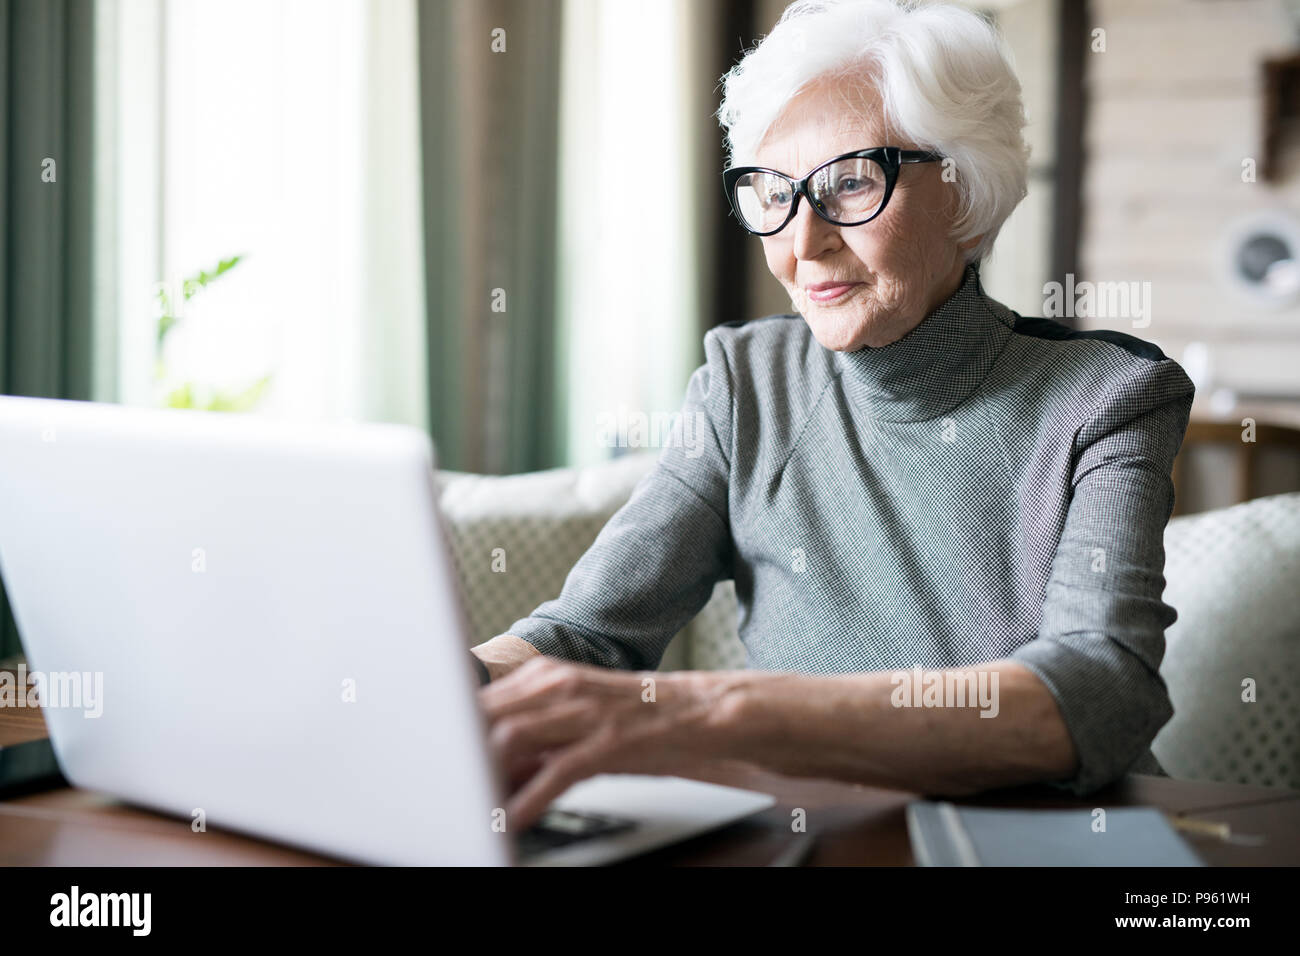 Senior woman typing on laptop Photo Stock